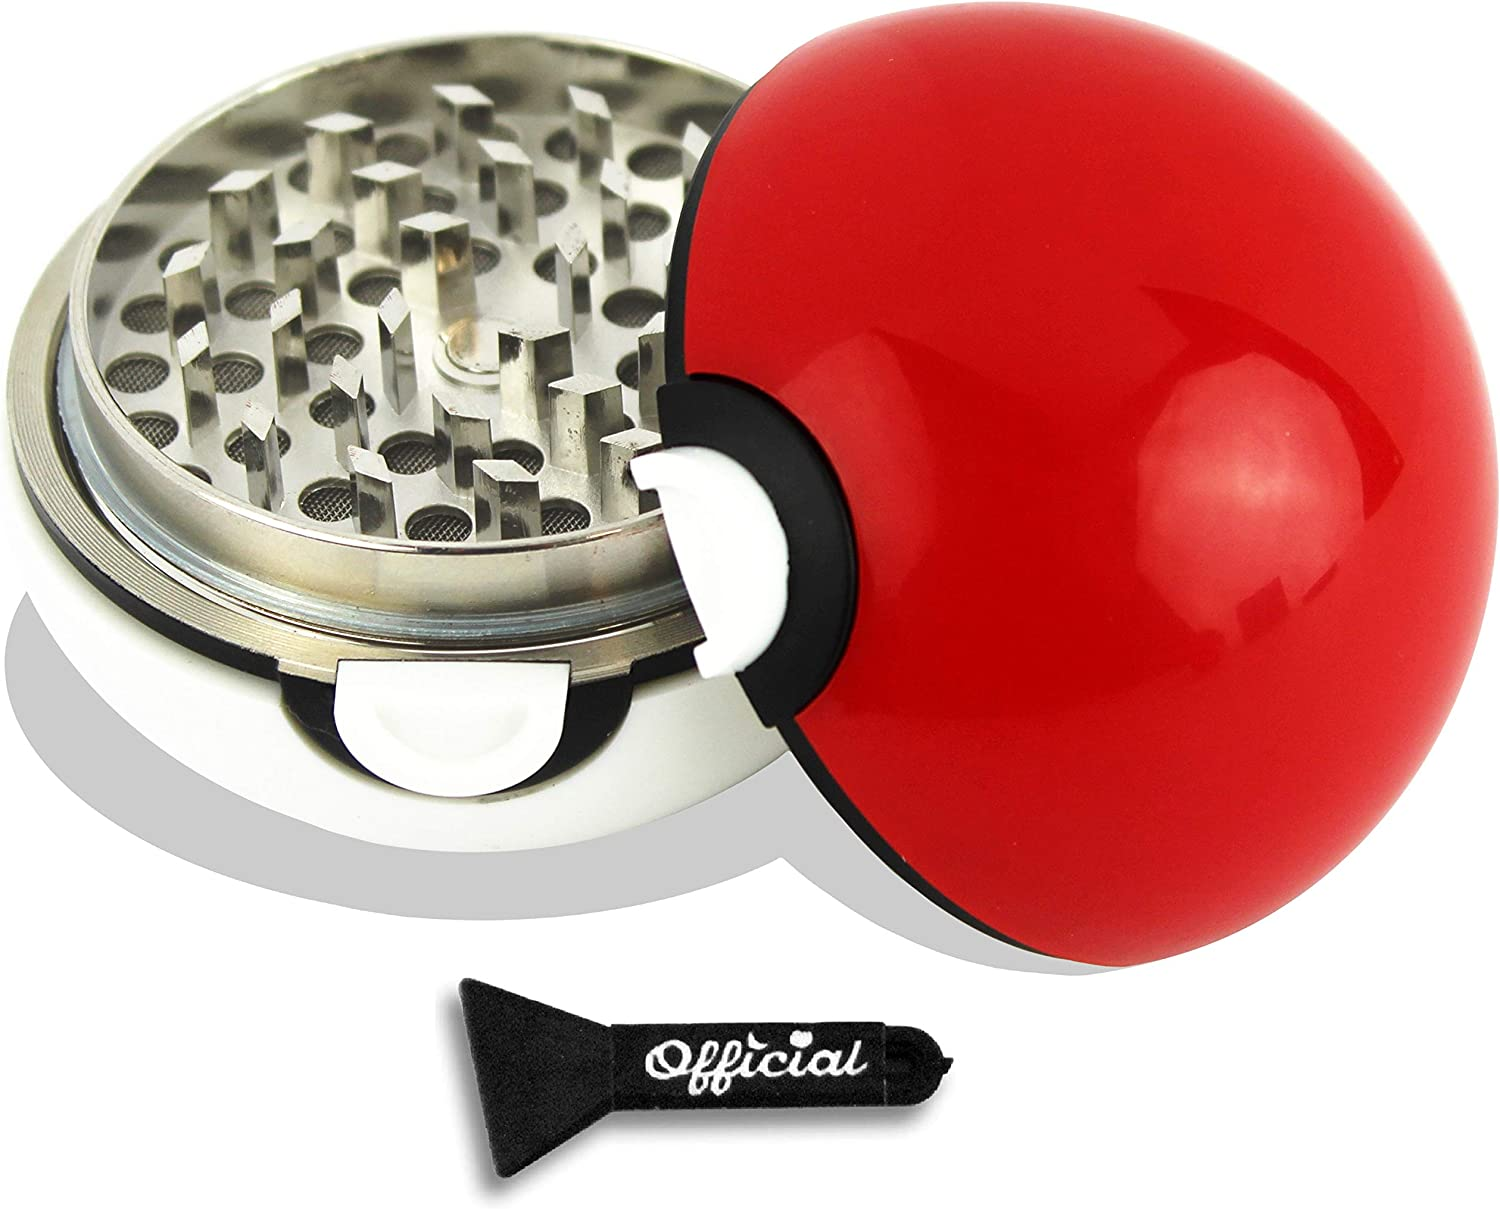 Official Pokeball Herb Grinder (Large) 2.7 Inches - With BONUS Scraper Tool - Cool Grinders For Herb & Spice With Catcher - 3 Part Grinder by Nestpark